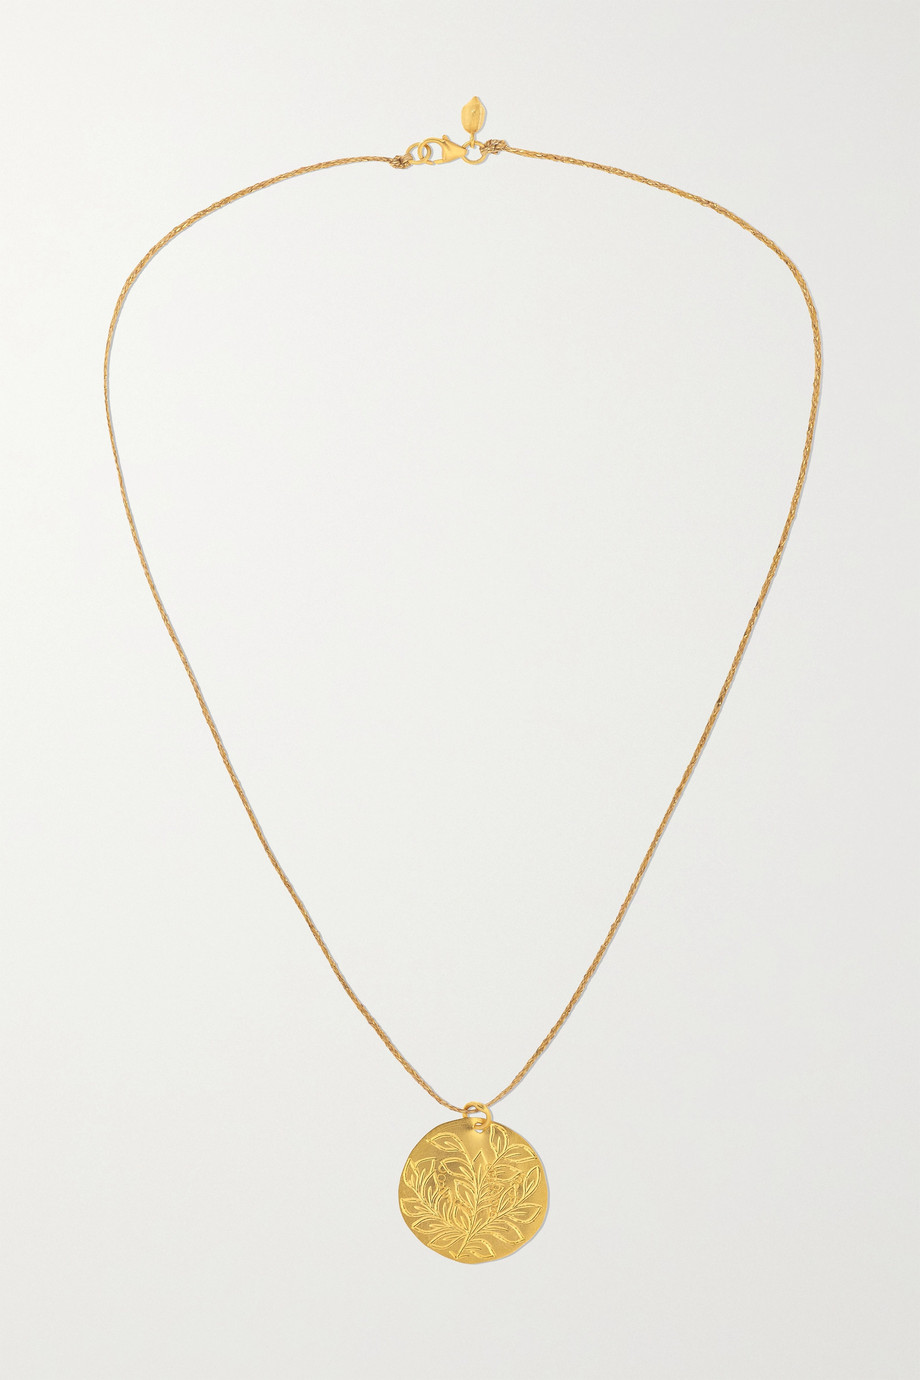 PIPPA SMALL 18 and 22-karat gold necklace